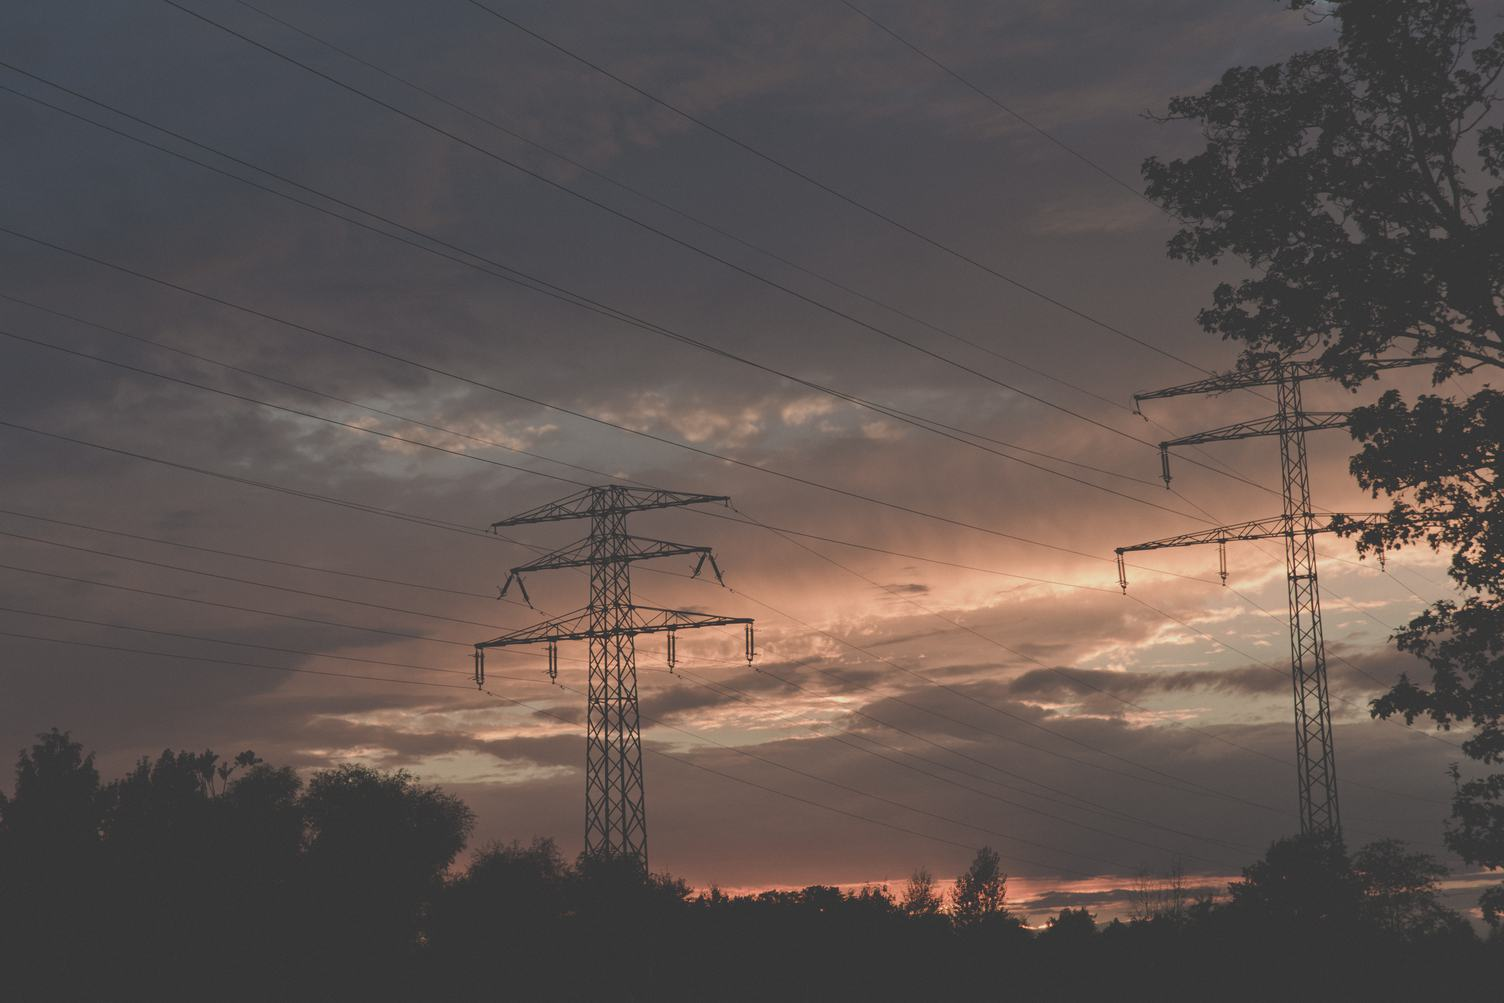 Sunset over High Voltage Pylons